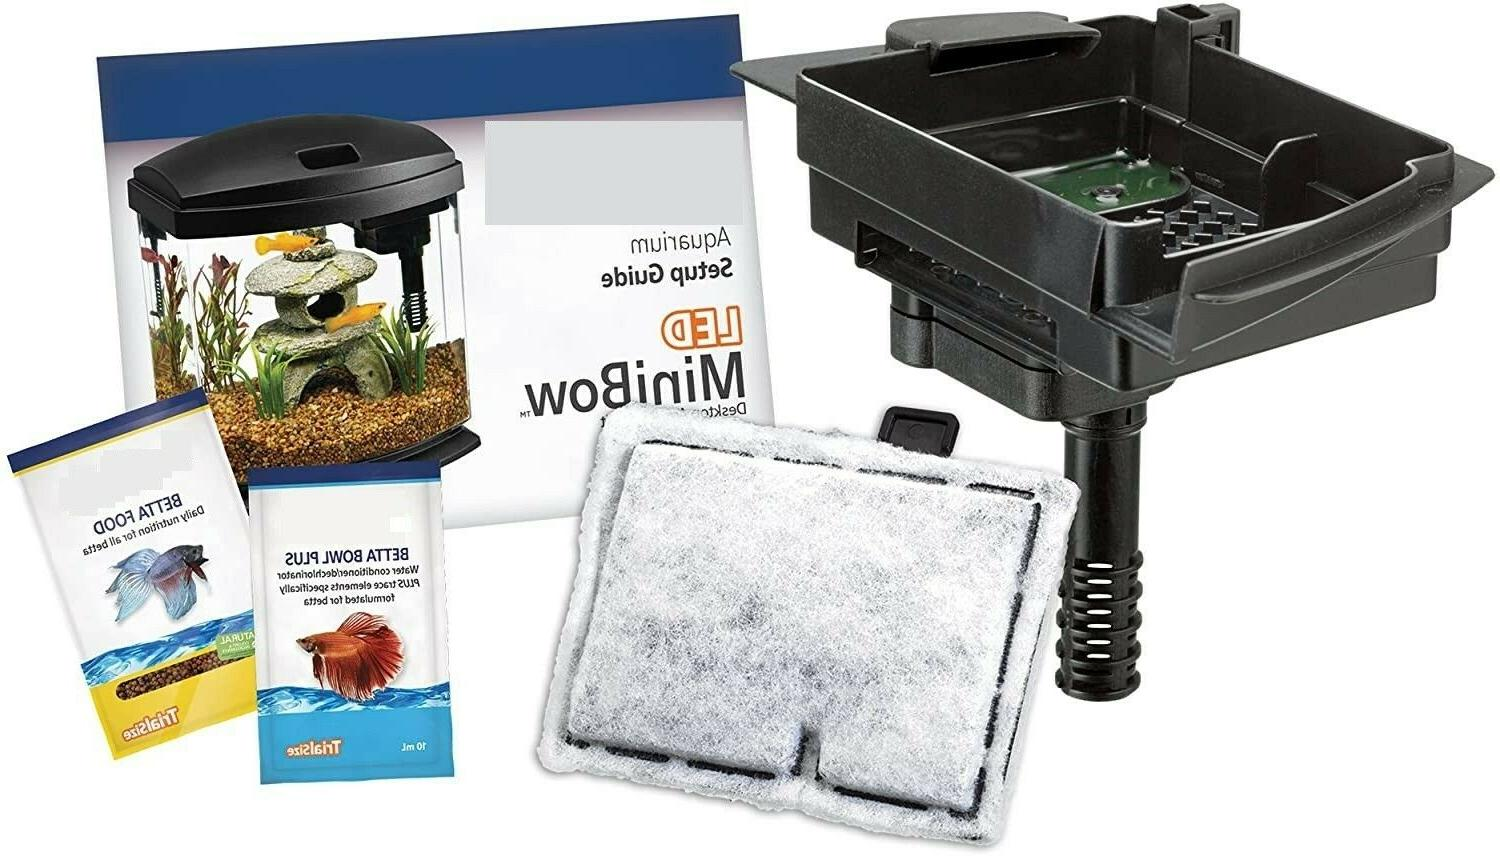 Compact Aquarium with Led Lighting Included Small Filter